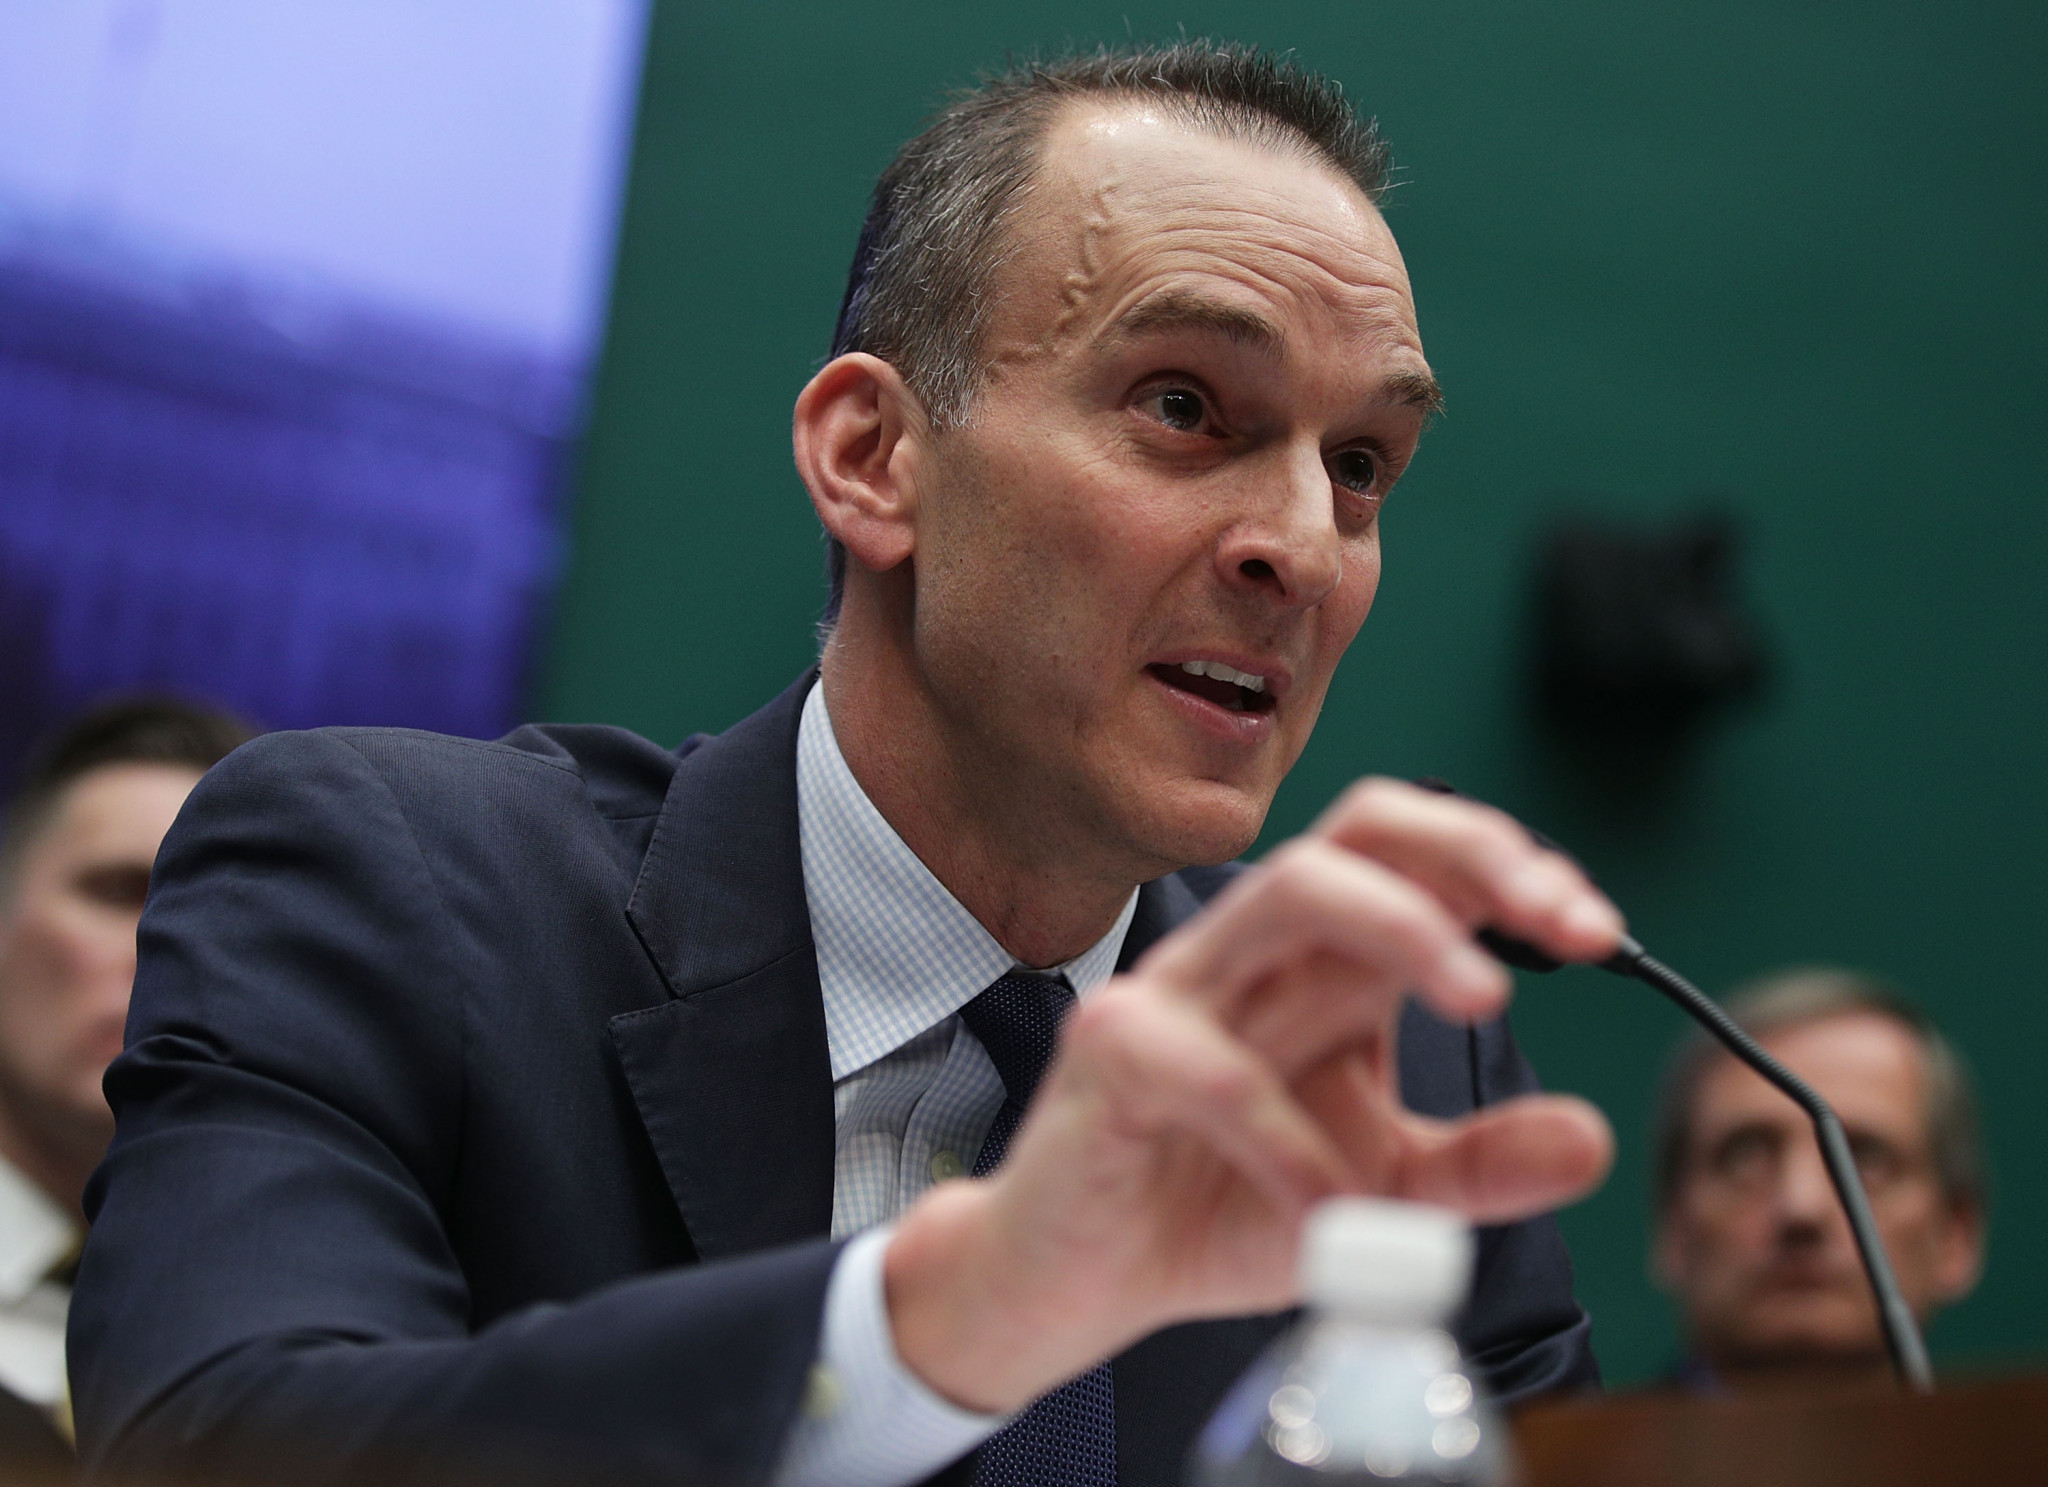 USADA chief executive Travis Tygart has reacted angrily to the WADA announcement ©Getty Images